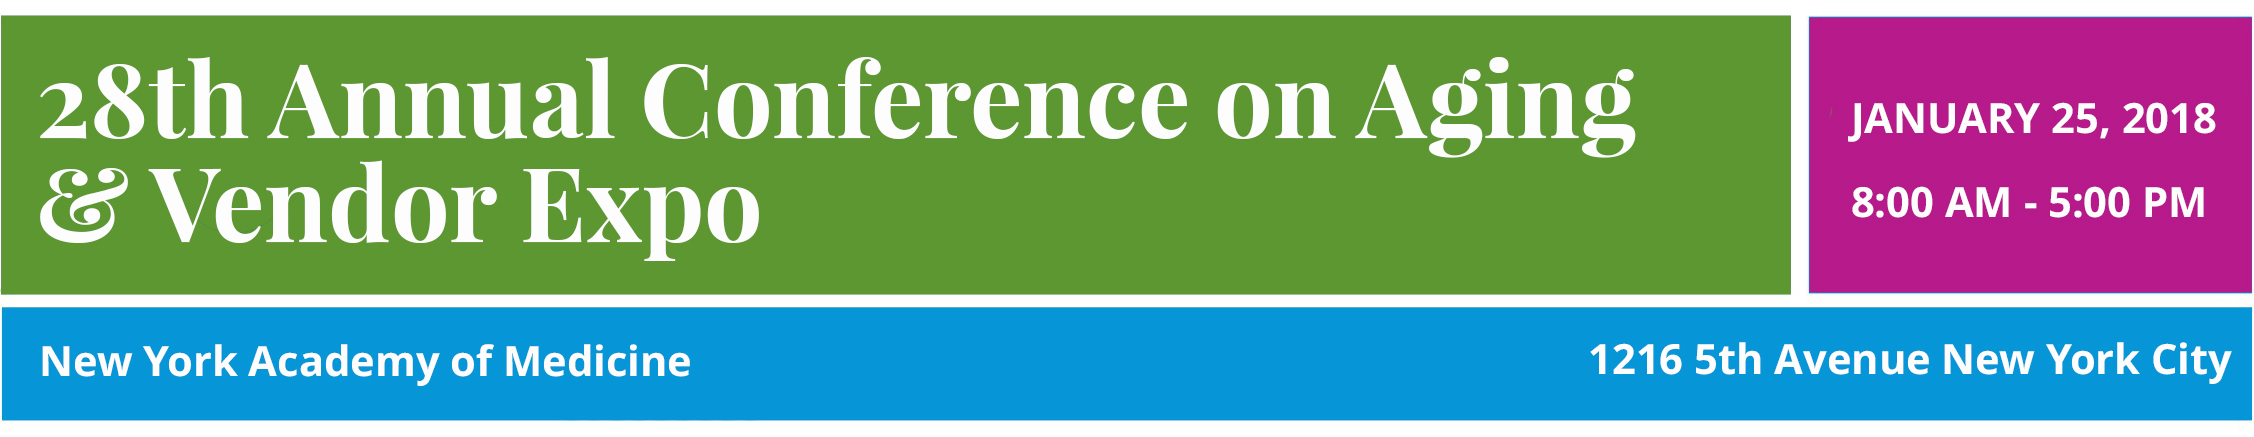 LiveOn NY's Annual Conference on Aging Registration Form